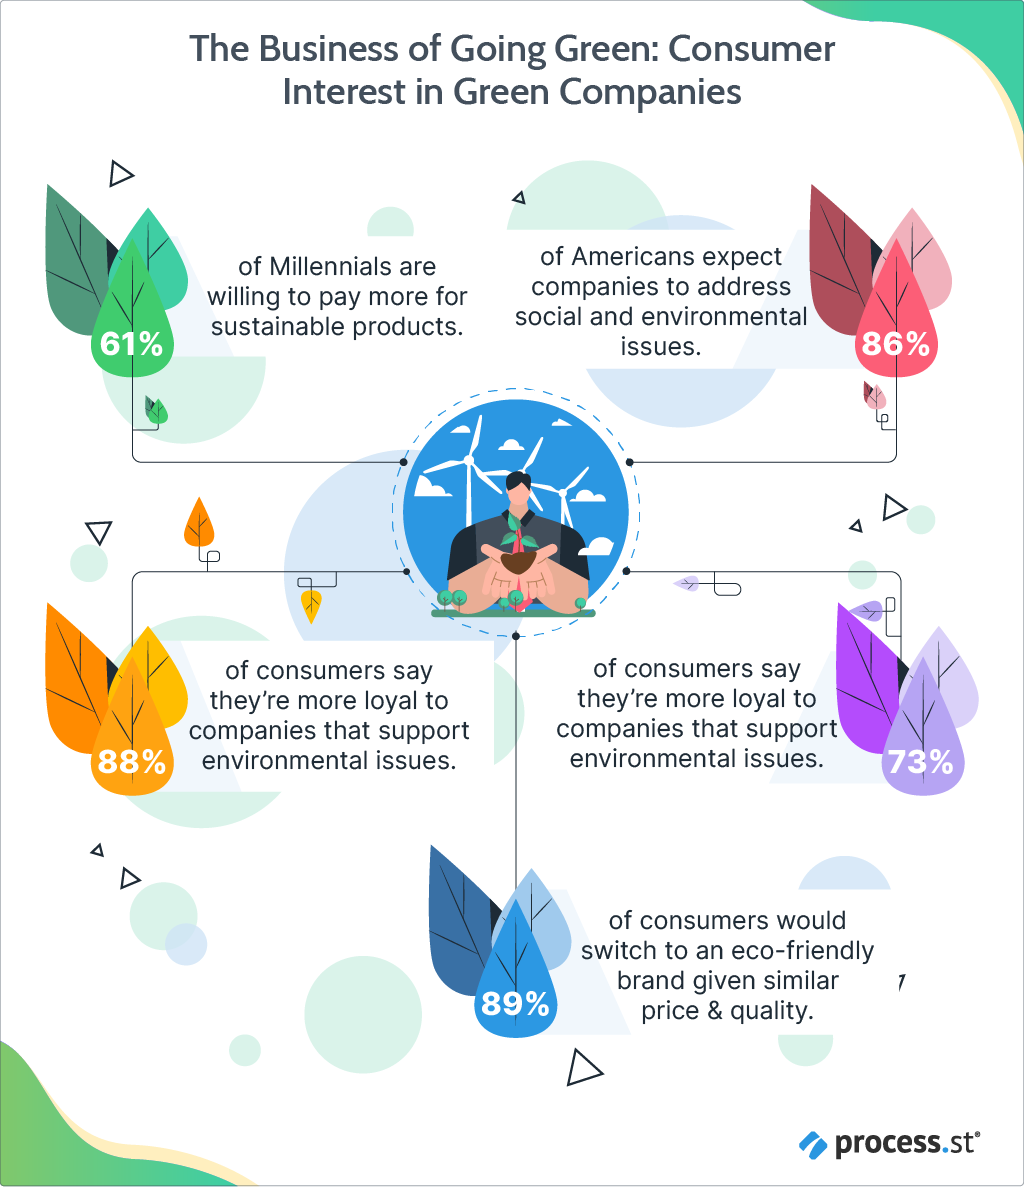 The Business of Going Green